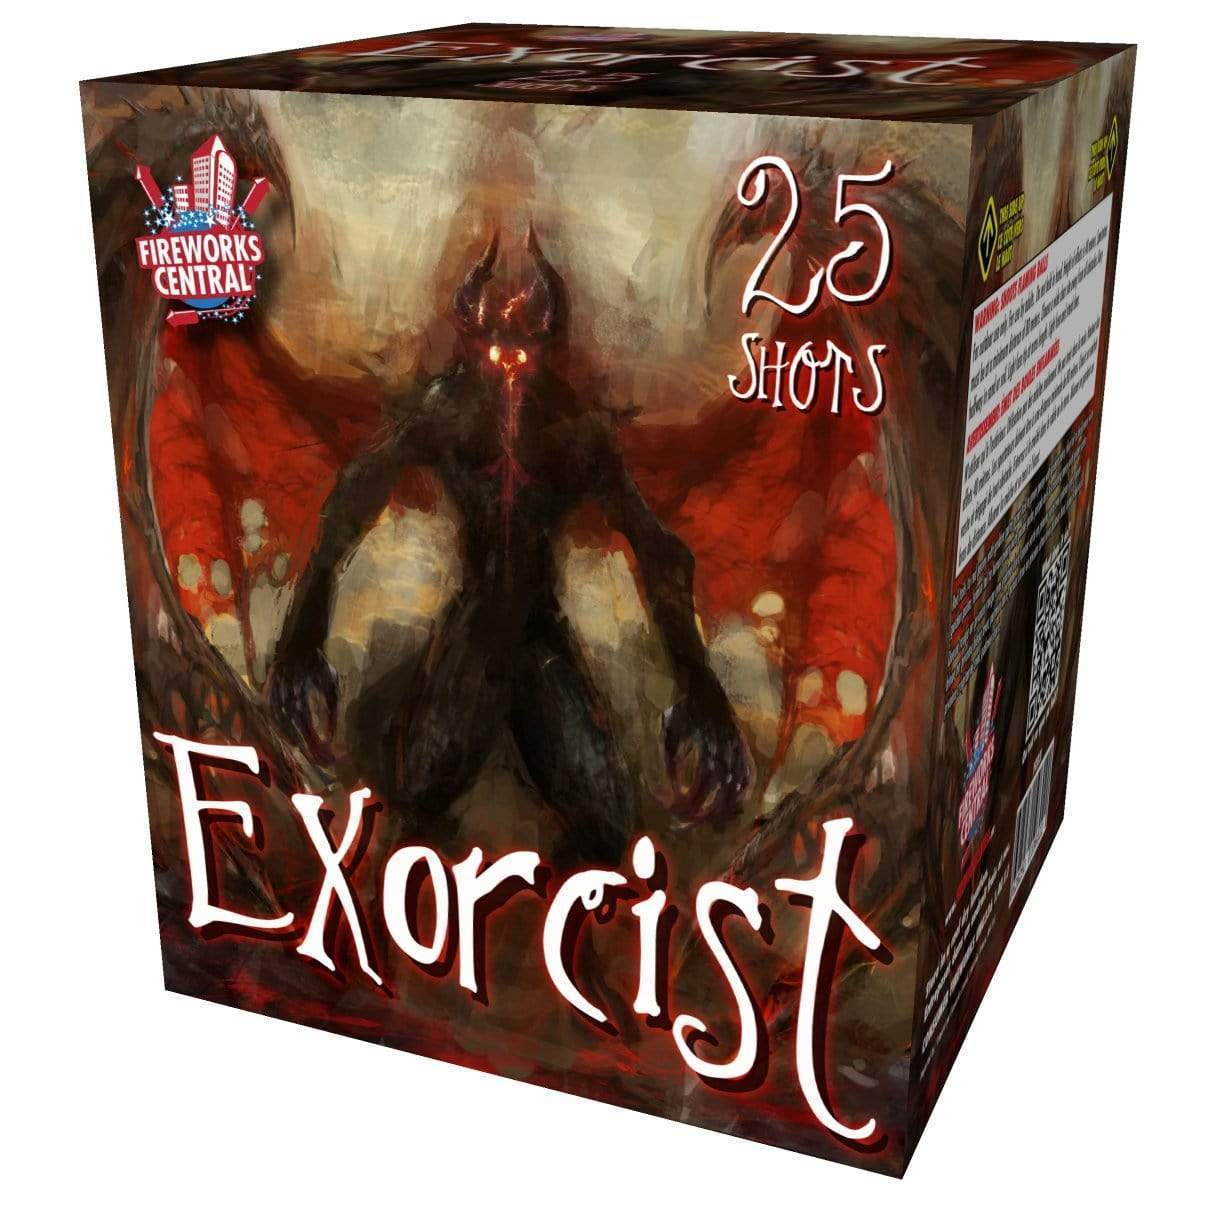 Fireworks Central Cakes Exorcist